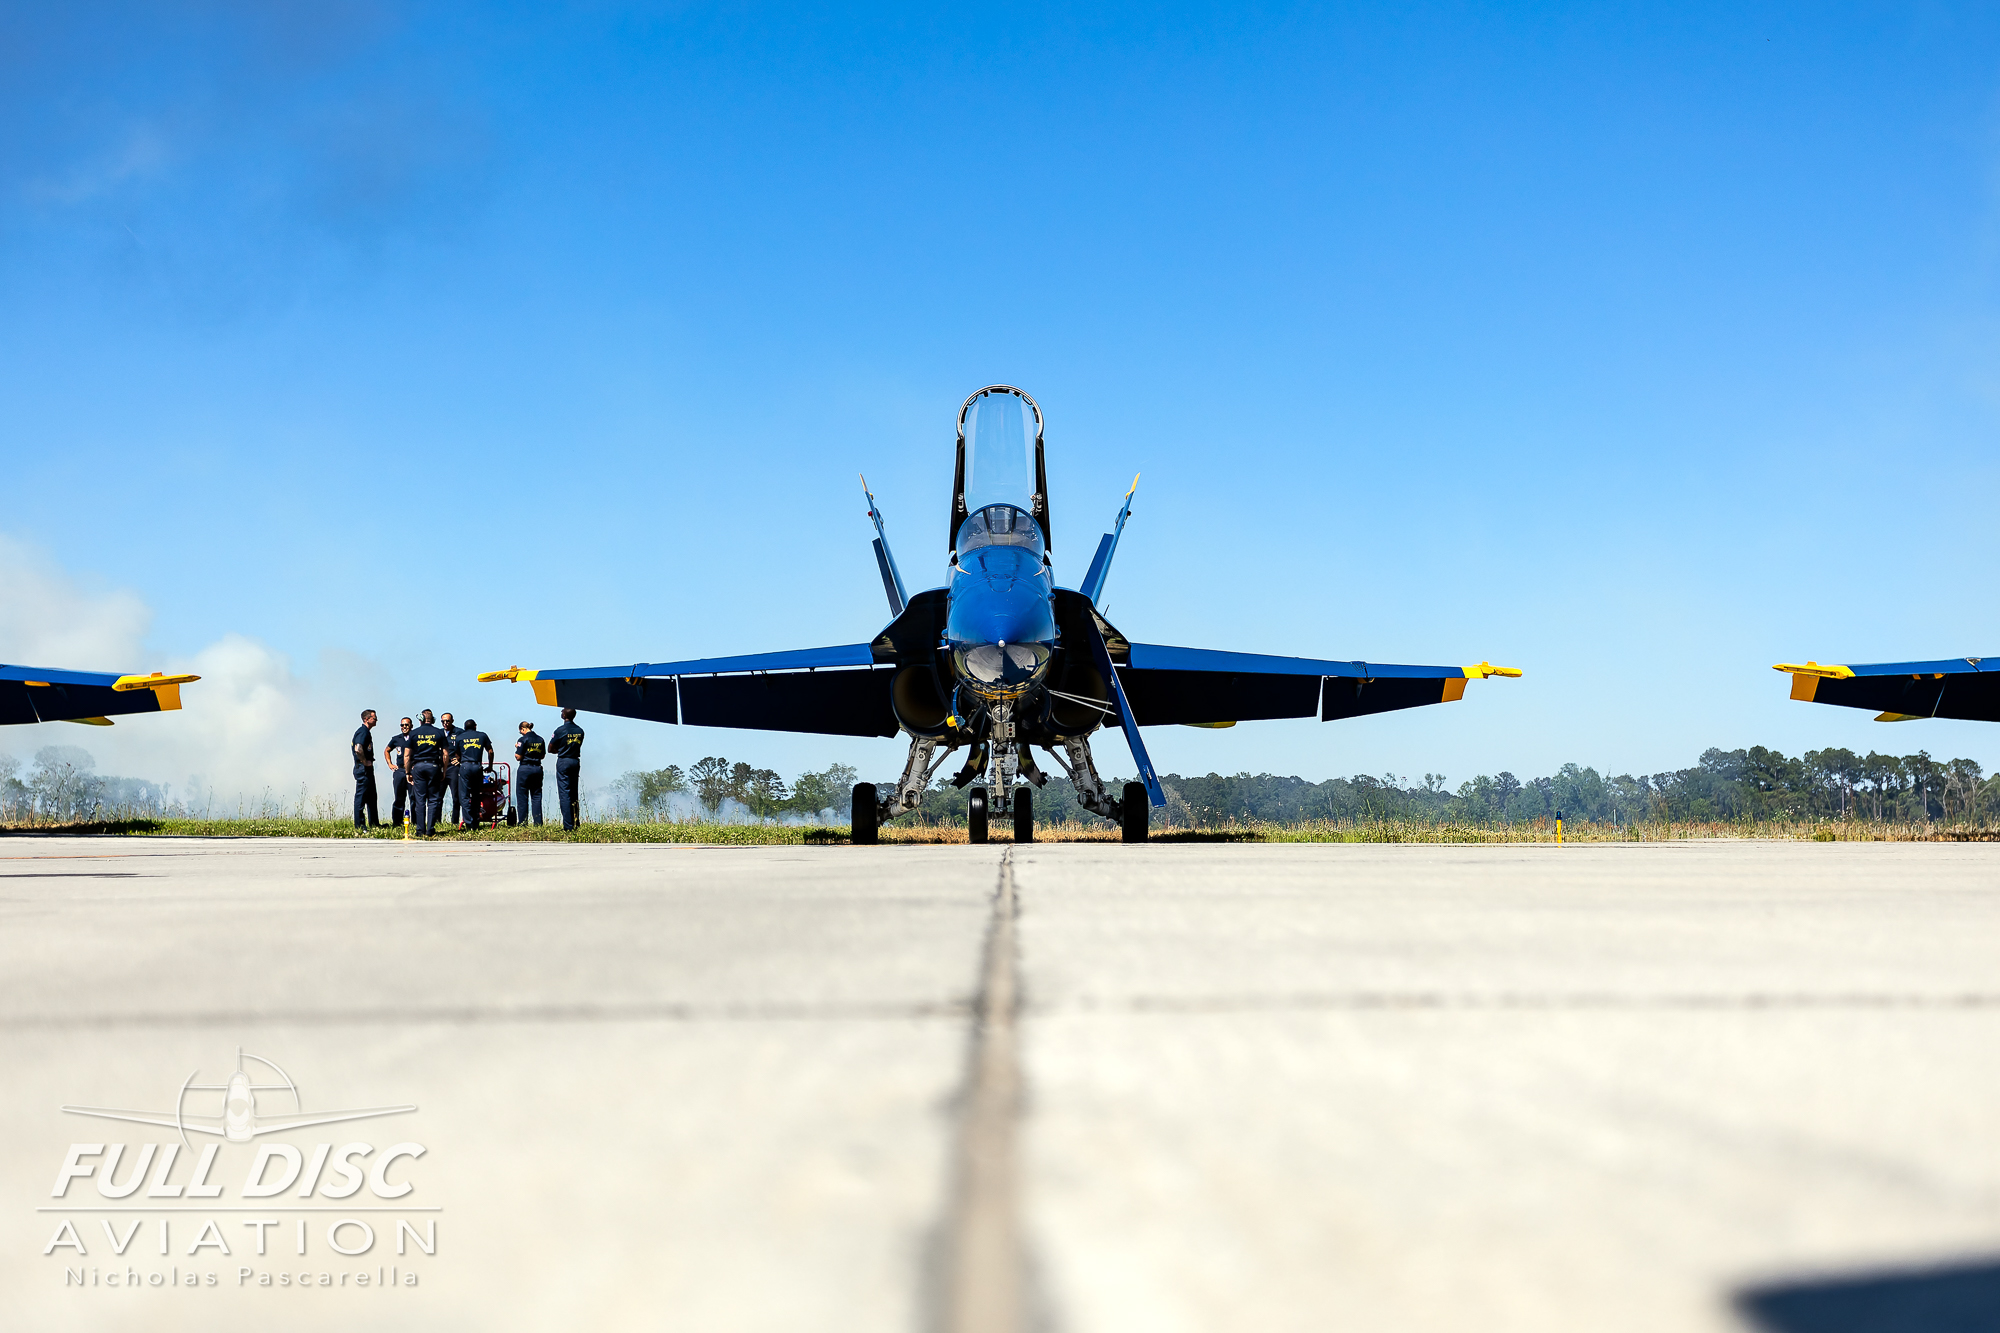 usnavyblueangels_nicholaspascarella_fulldiscavation_aviation_airshow_headon_.jpg